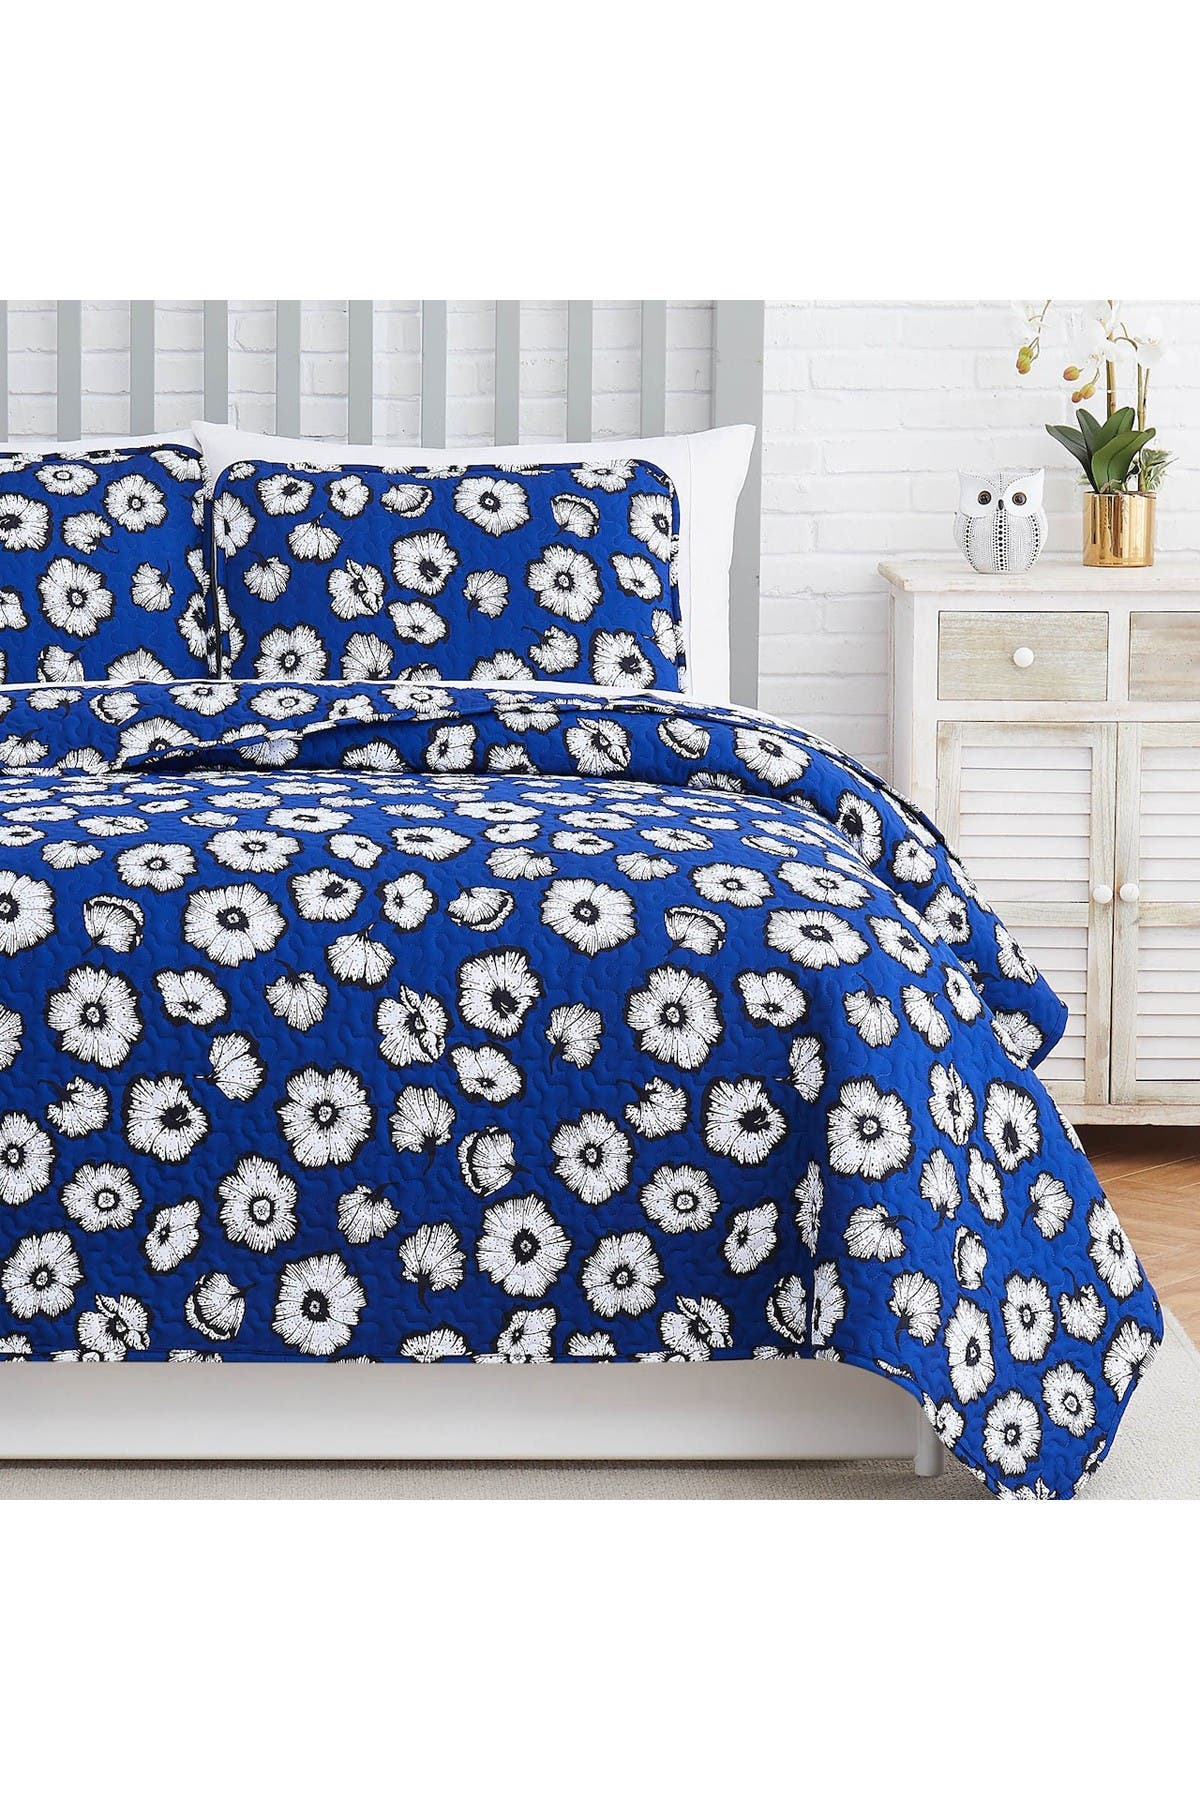 Image of SOUTHSHORE FINE LINENS Essence Oversized Quilt Cover Set - Blue - King/California King